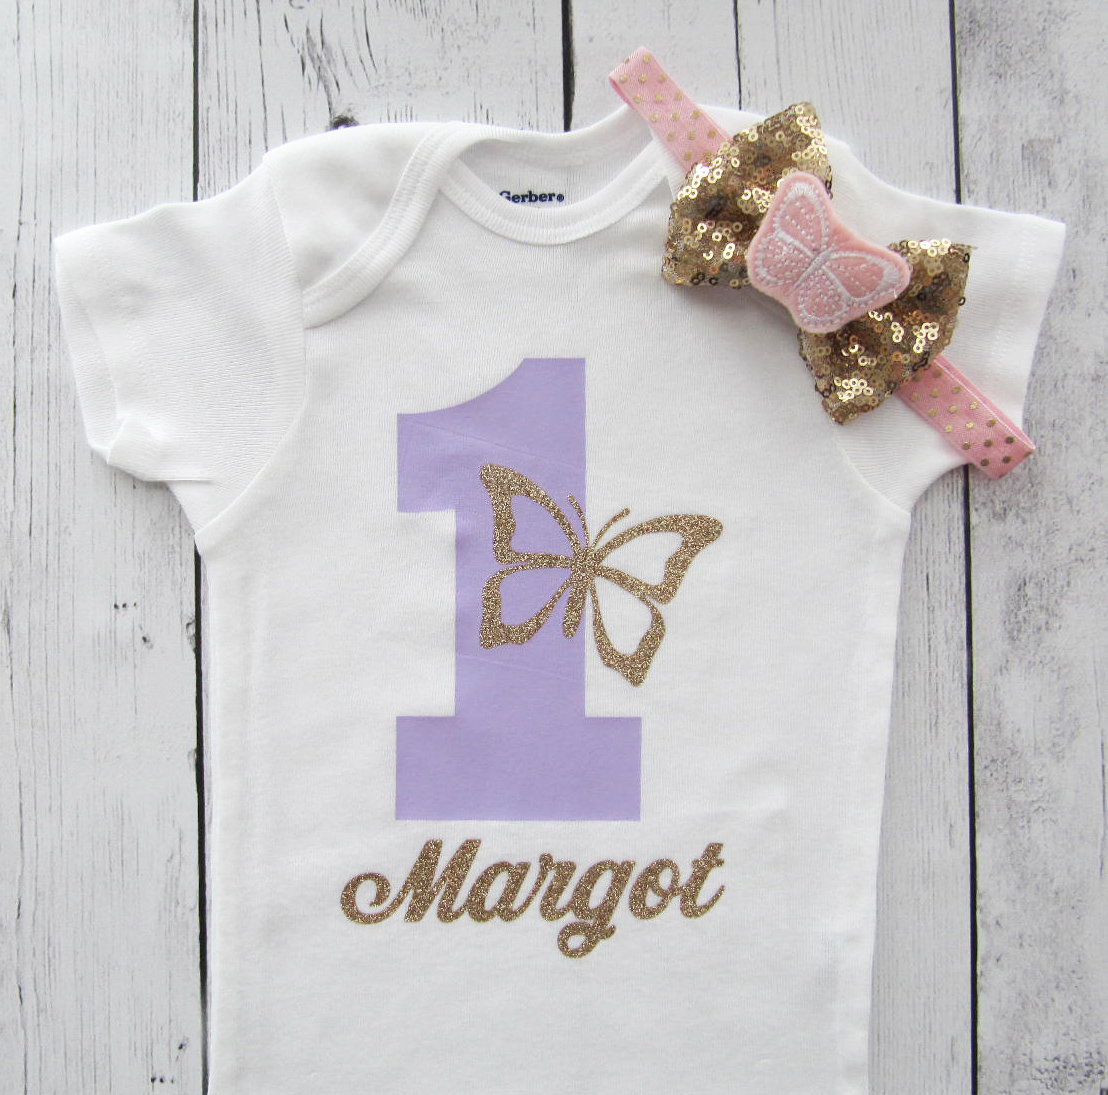 ButterflyFirst Birthday Onesie in purple and gold - girl first birthday shirt, butterfly 1 shirt, 1st birthday girl, purple gold butterflies